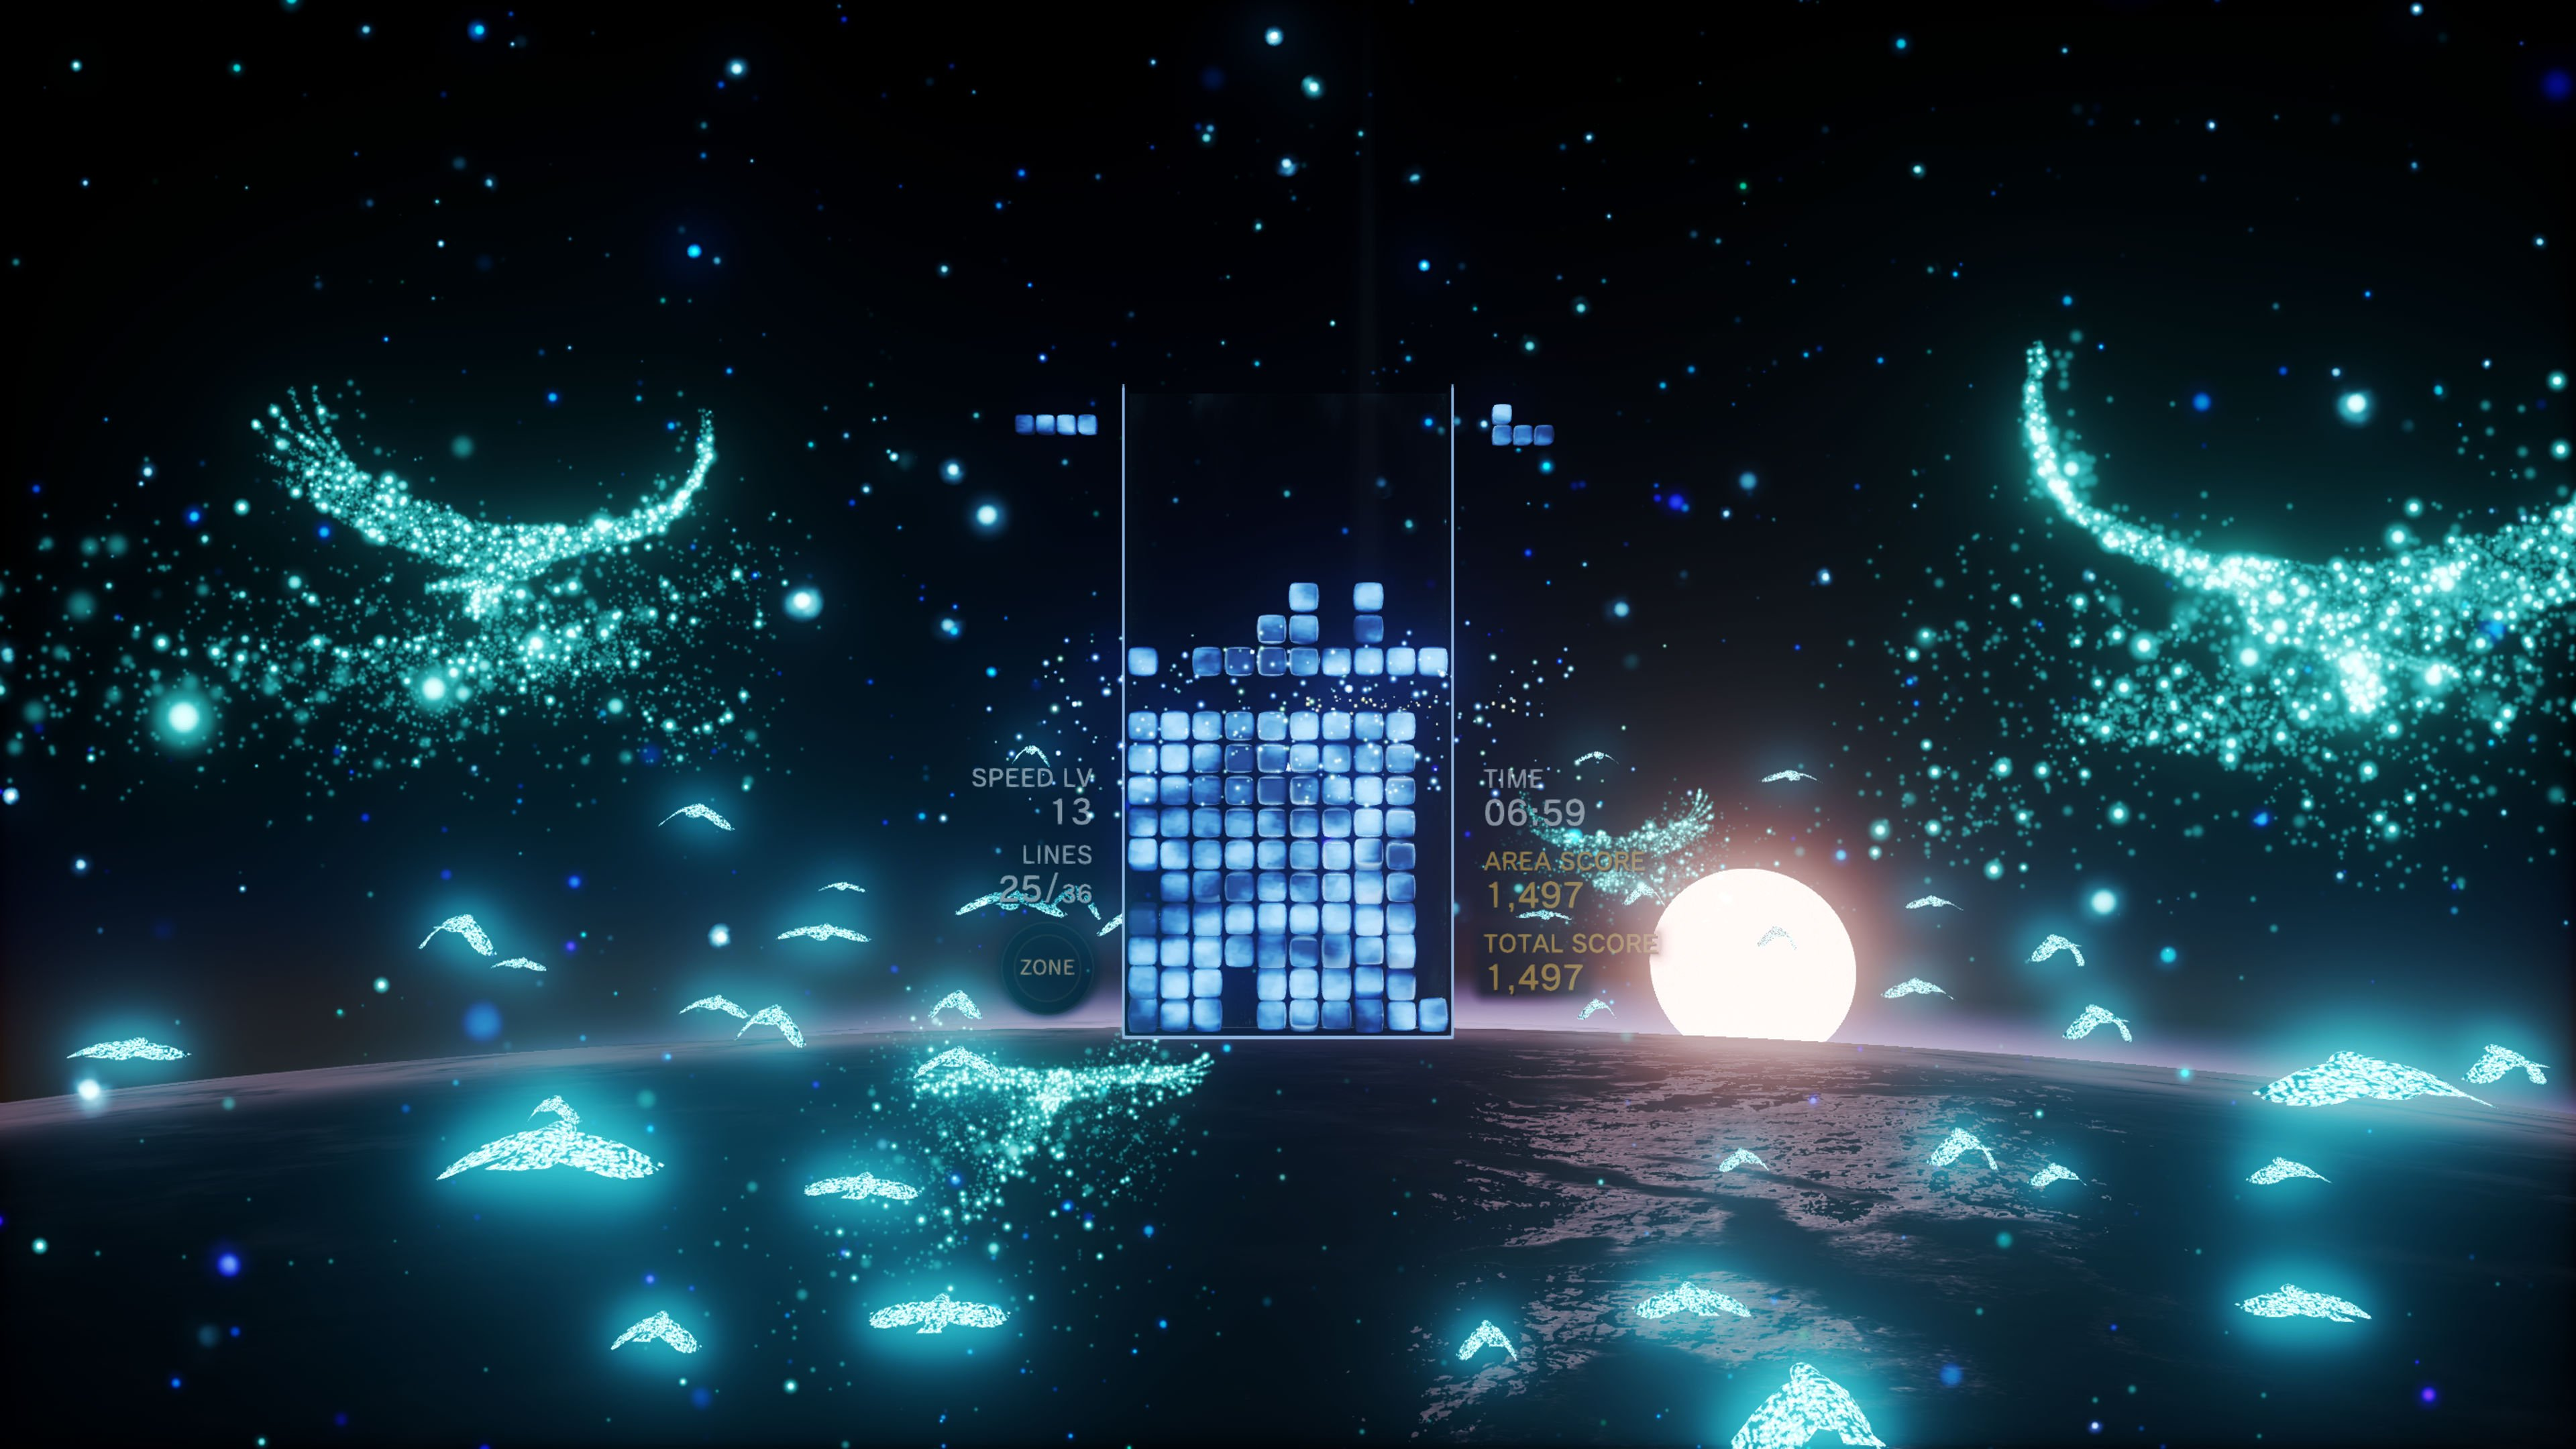 Tetris Effect is getting a demo this week on PS4 screenshot